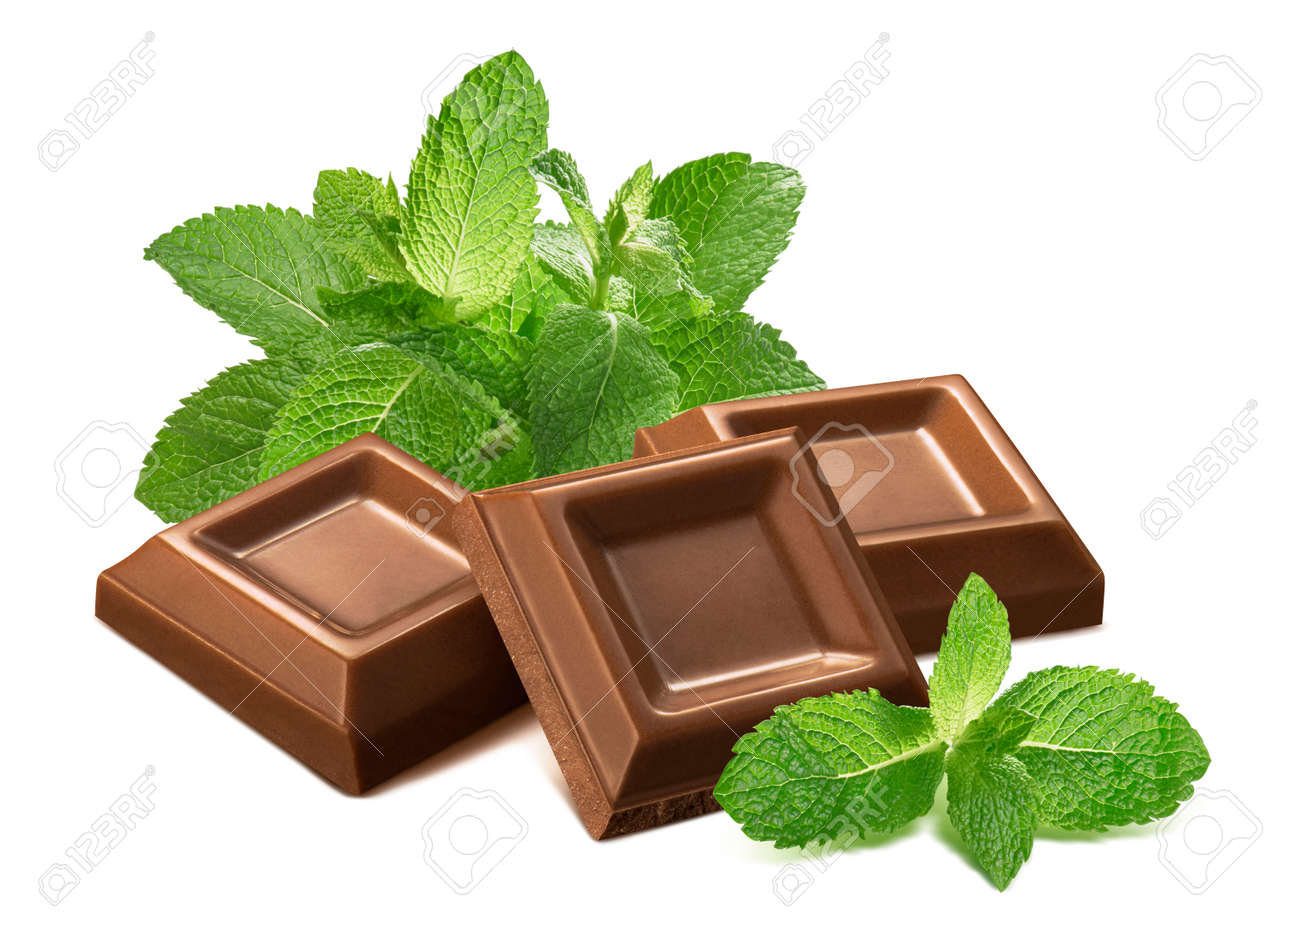 Fresh mint leaves and chocolate pieces isolated on white background. Package design element - 173413993